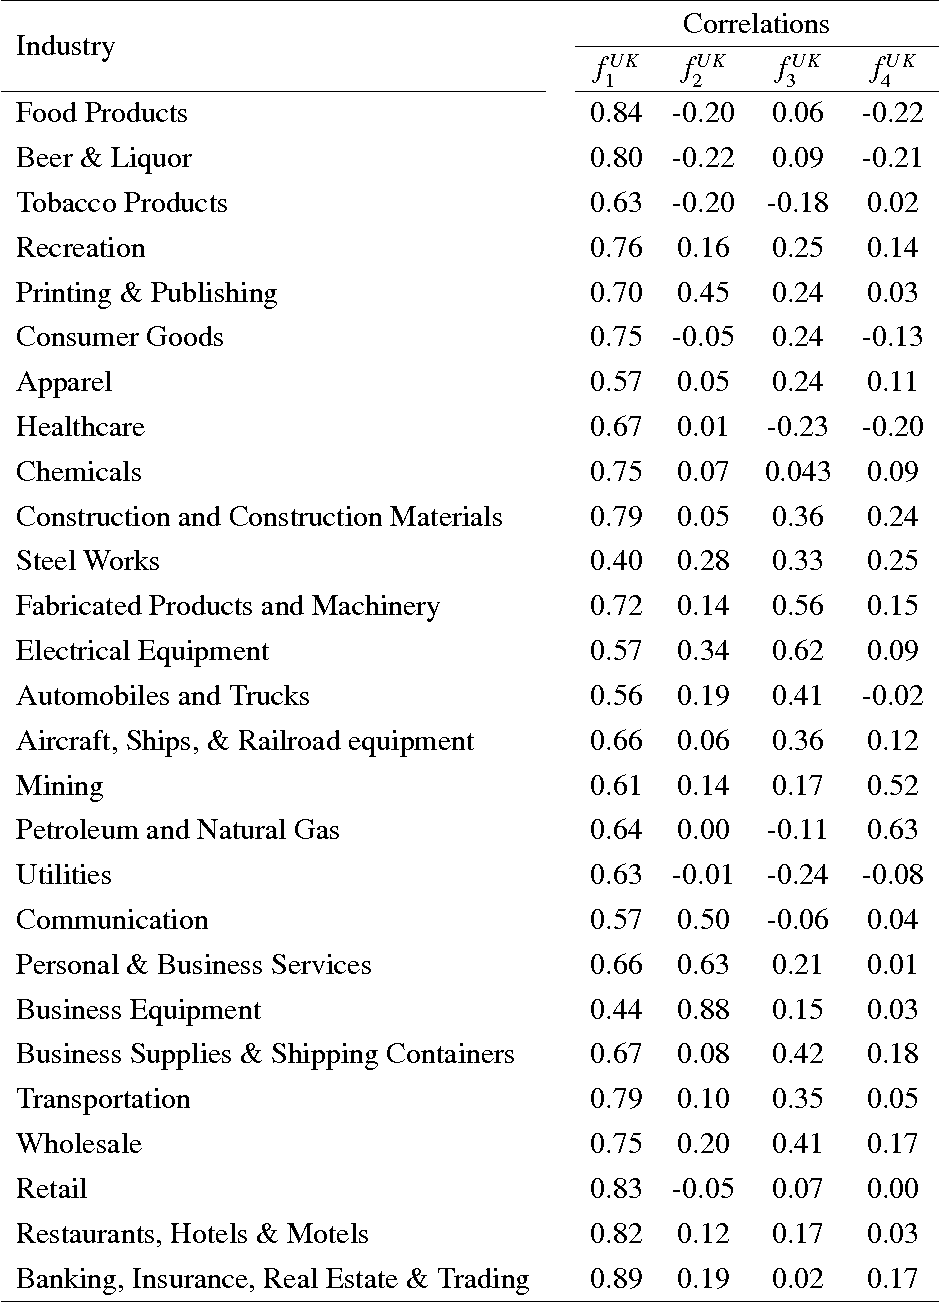 Table 12 from Sources of Systematic Risk - Semantic Scholar